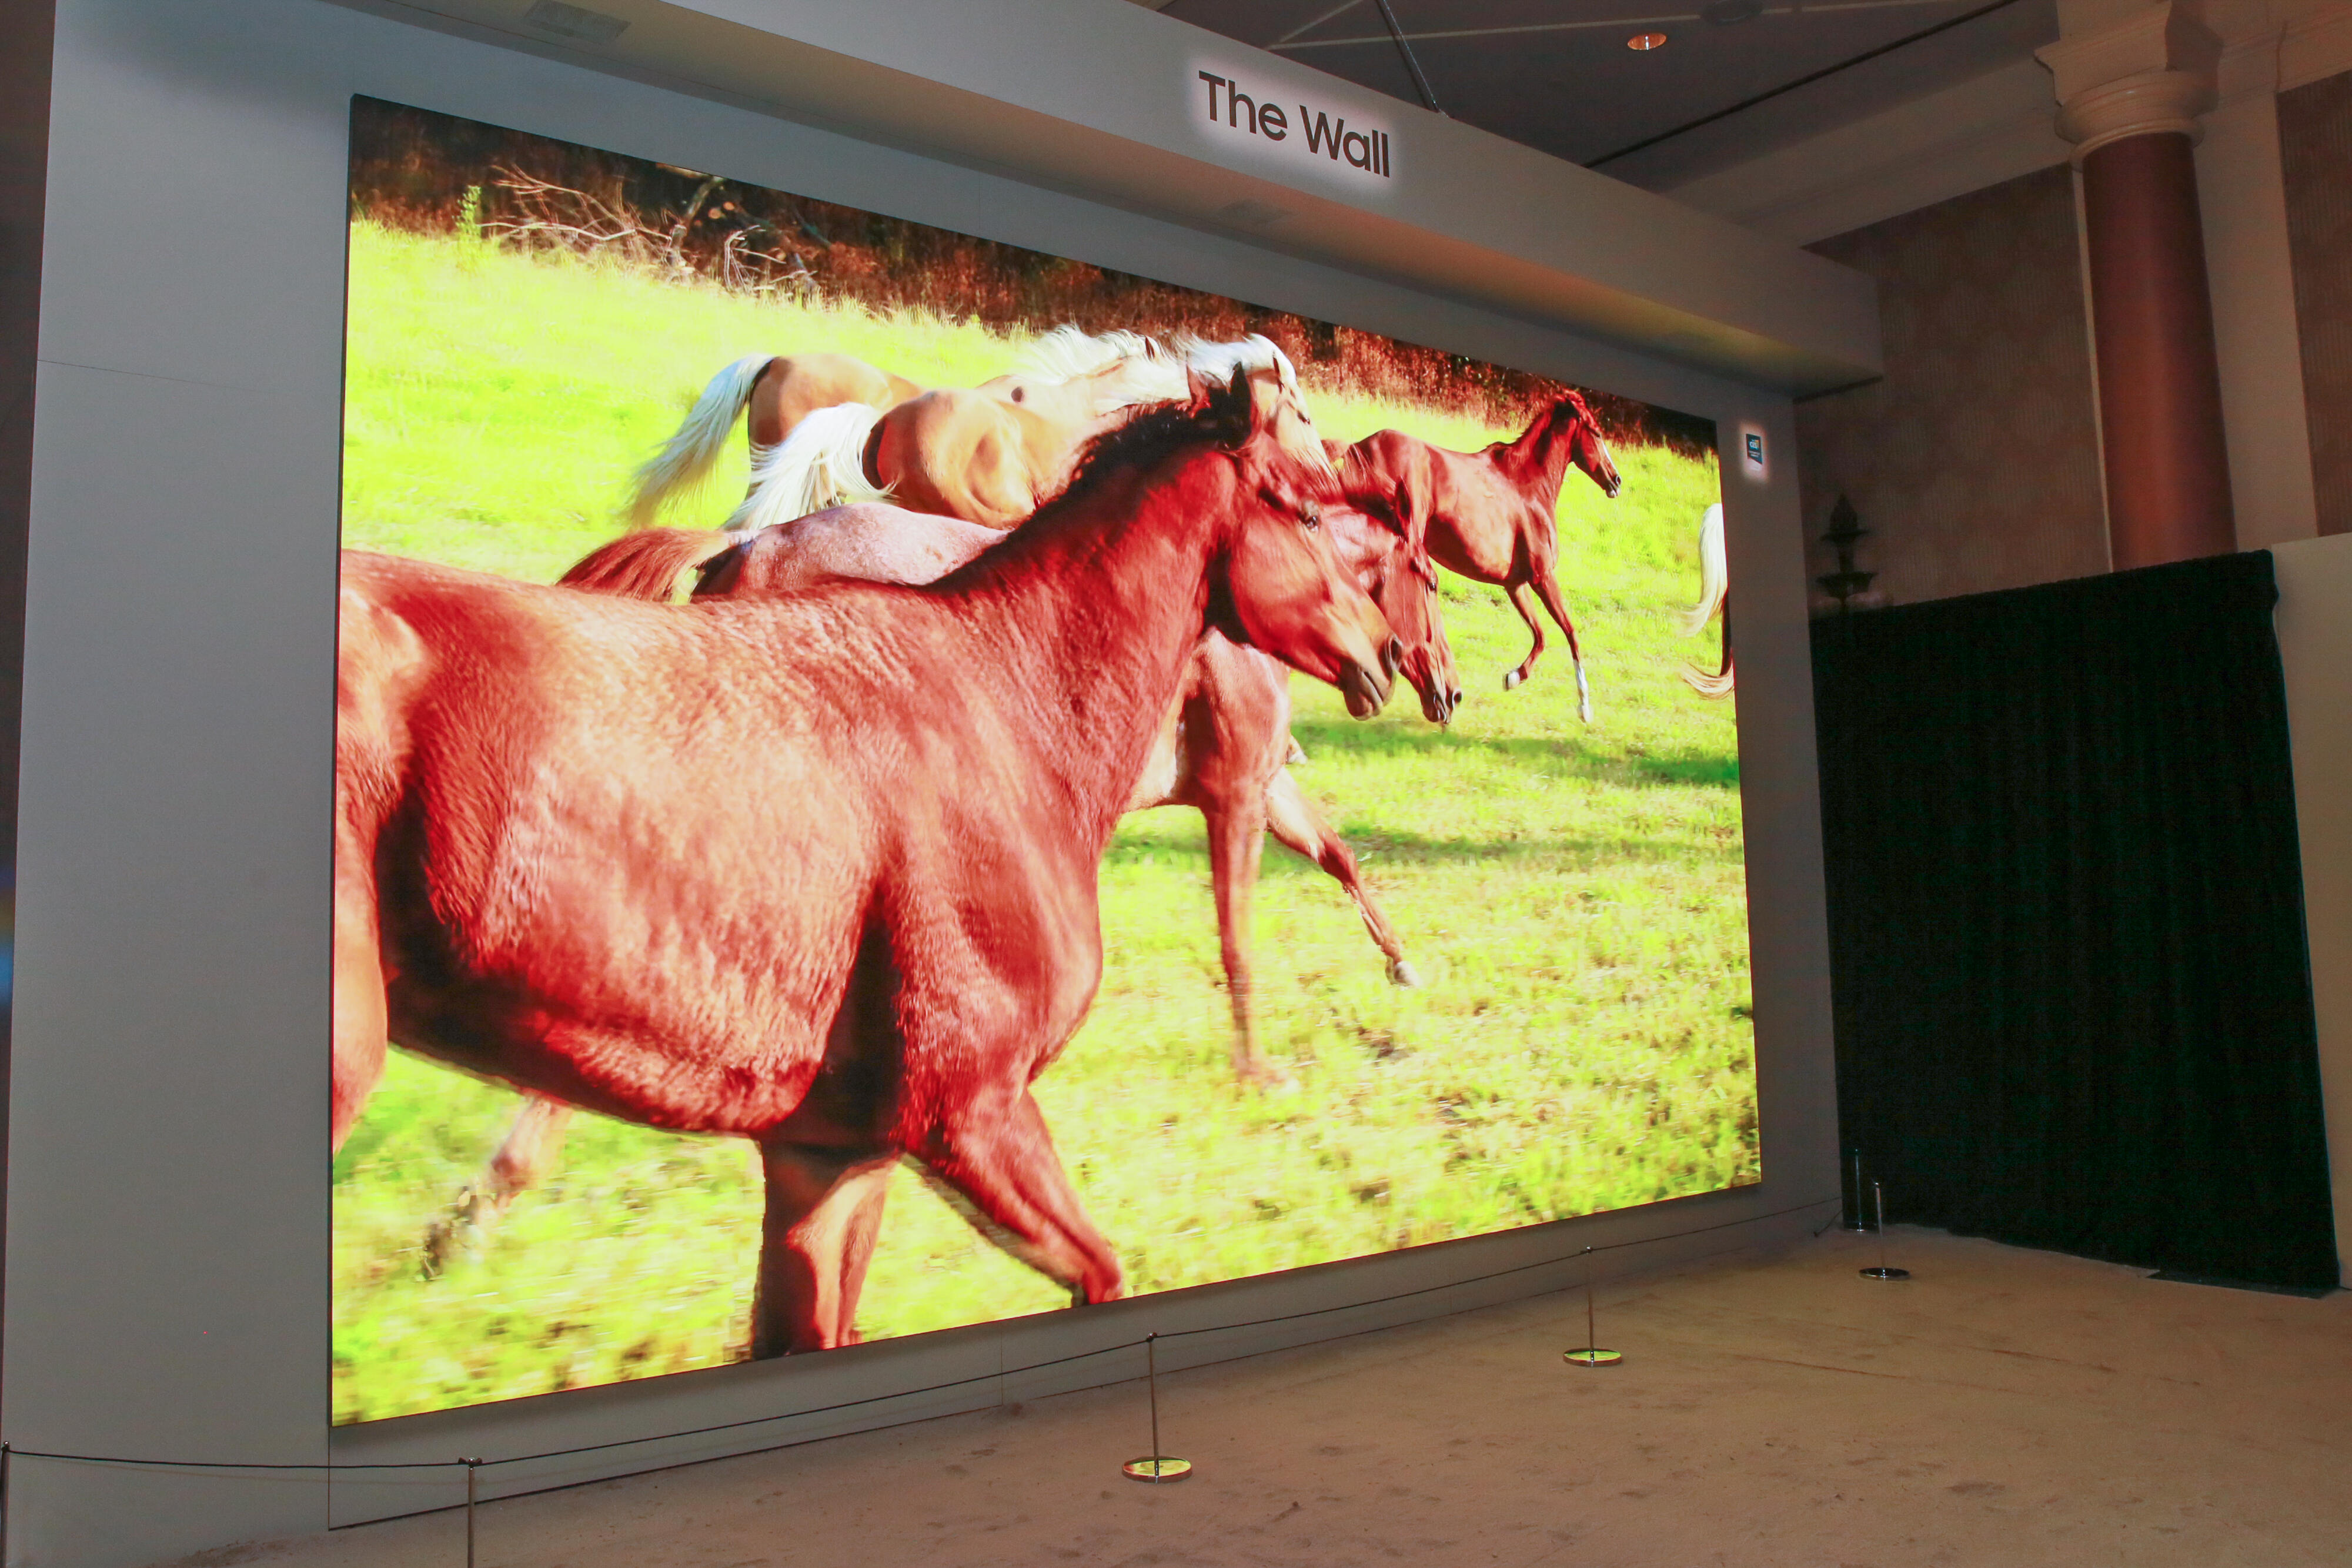 002-samsung-the-wall-ces-2020-micro-led